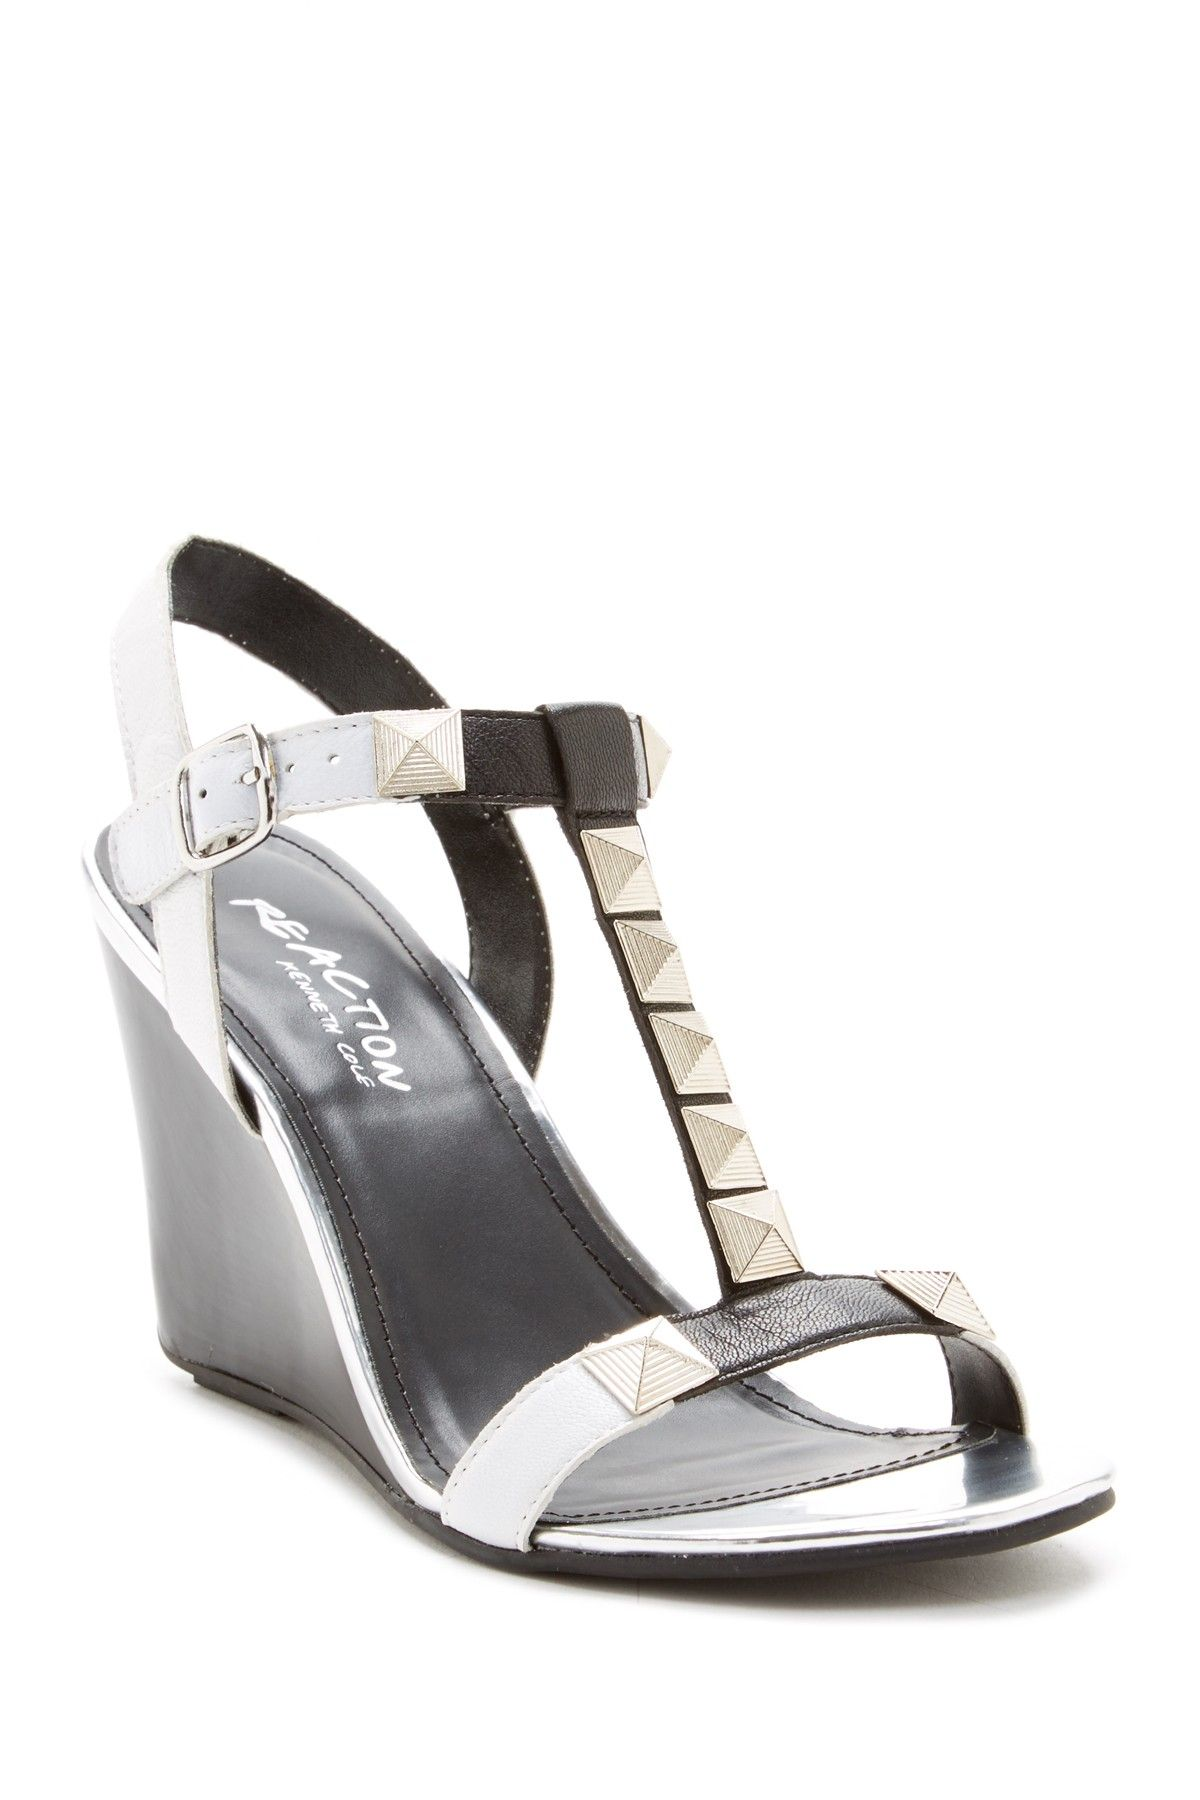 56d6498d0bd Ava Flava Wedge Sandal by Kenneth Cole New York on  nordstrom rack